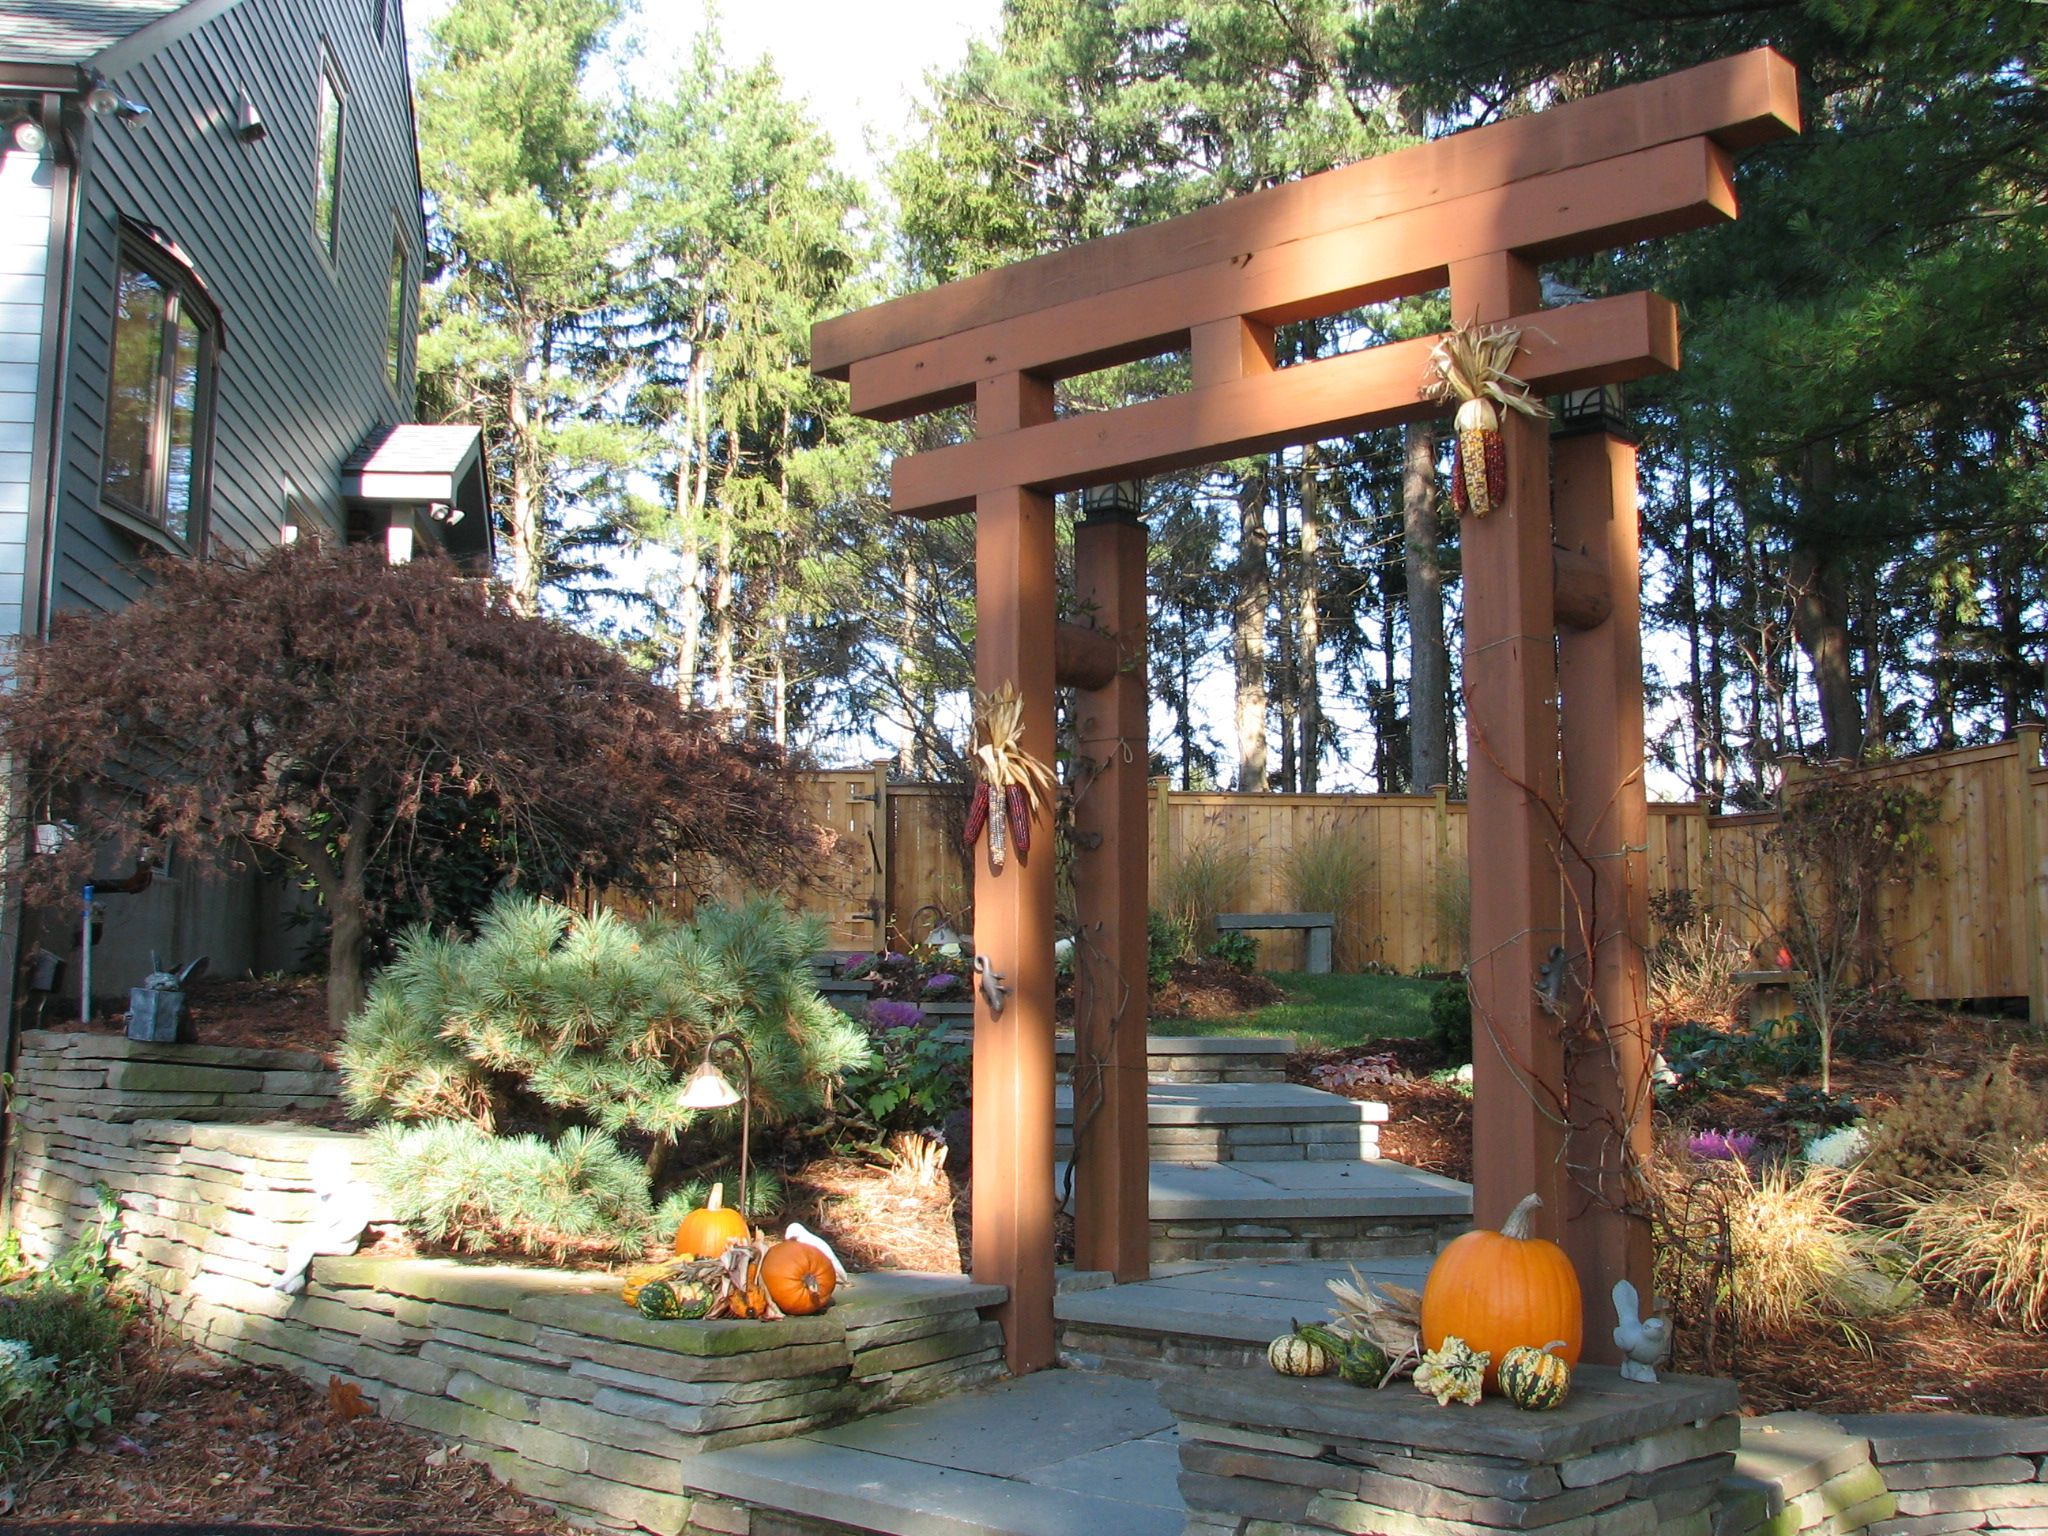 Japanese Arbor Idea   Blue Stone Walkway With Japanese Garden Influenced  Plantings. Arbor IdeasFence ...